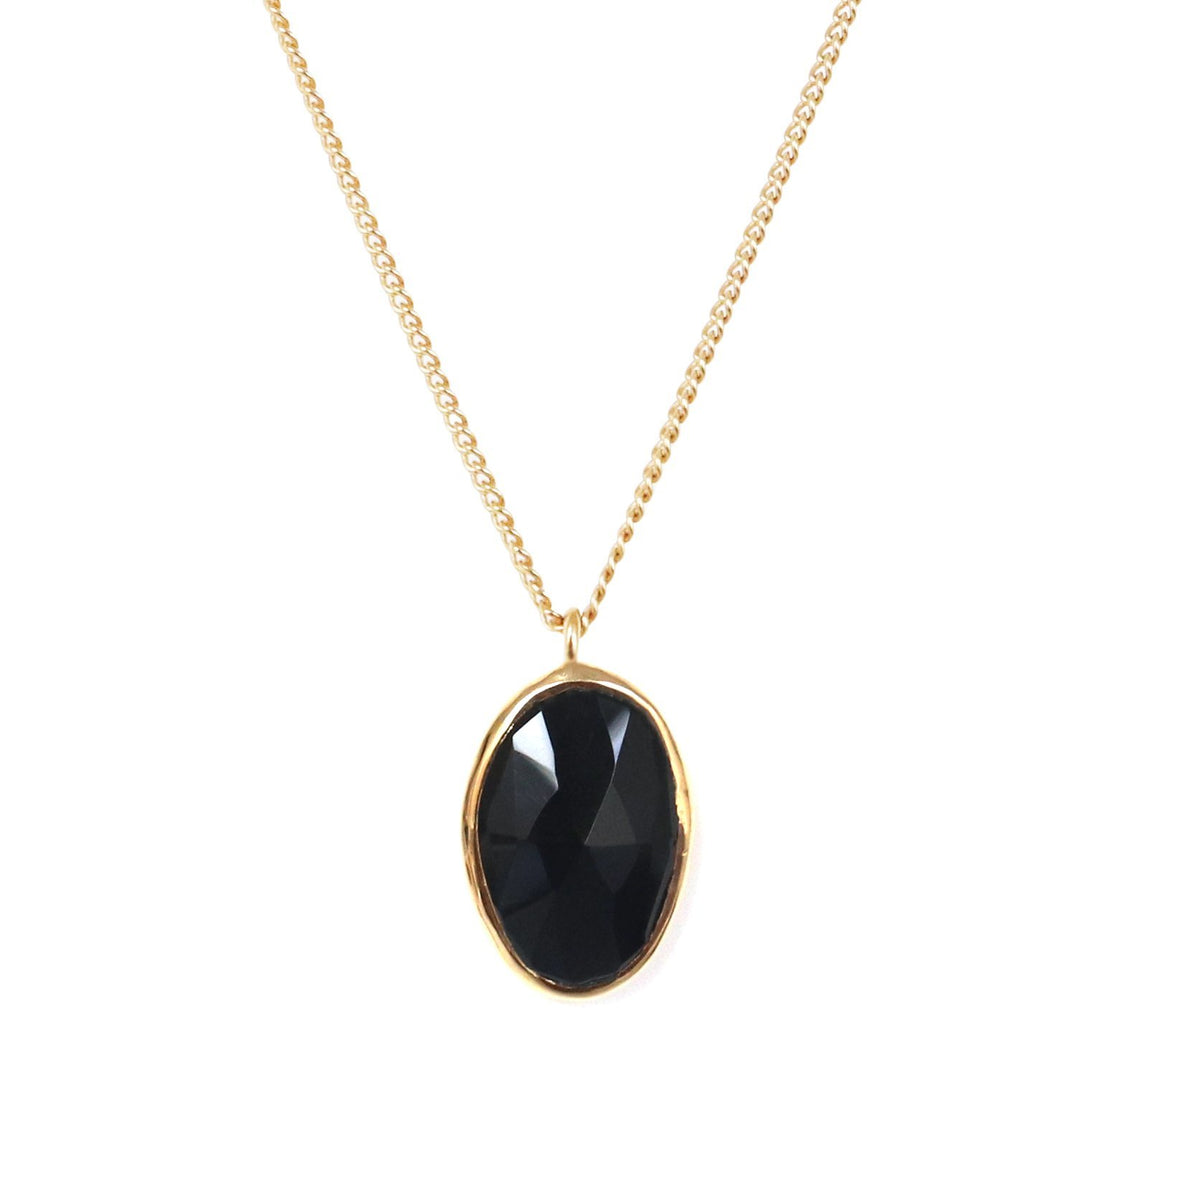 PROTECT PENDANT NECKLACE - BLACK ONYX & GOLD - SO PRETTY CARA COTTER